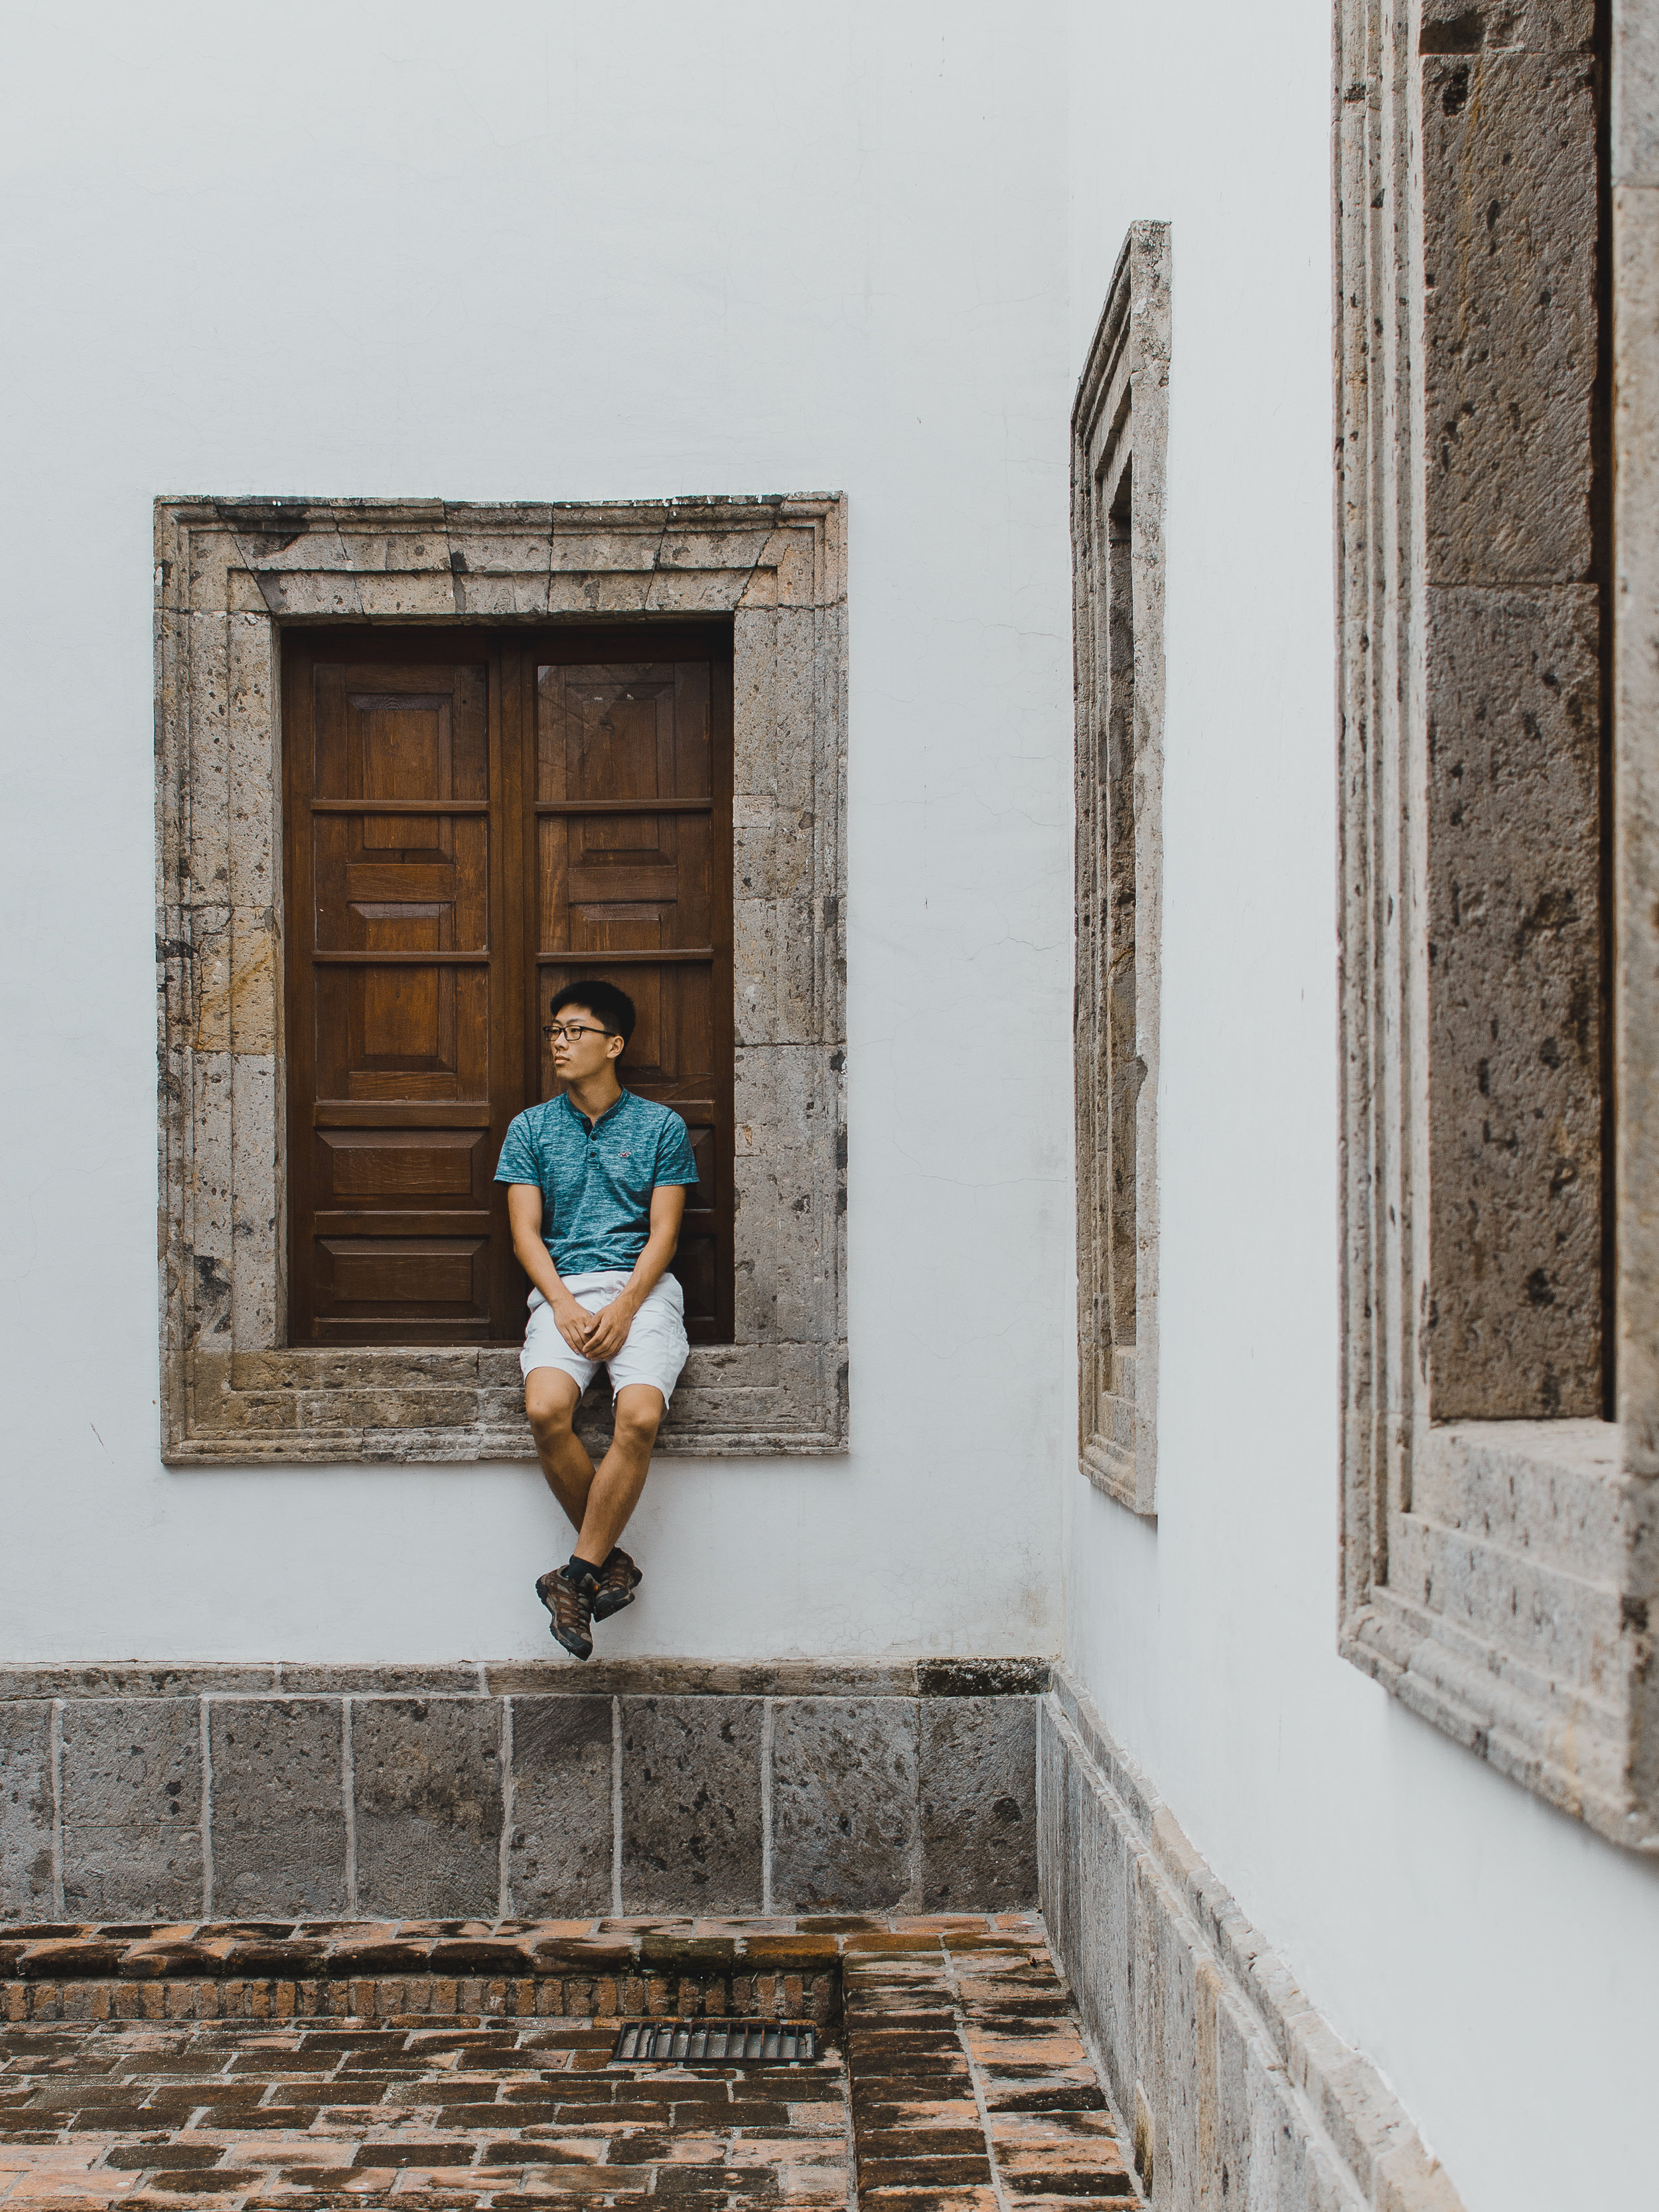 Instituto Cultural Cabanas in Guadalajara was one of our favorite places we found